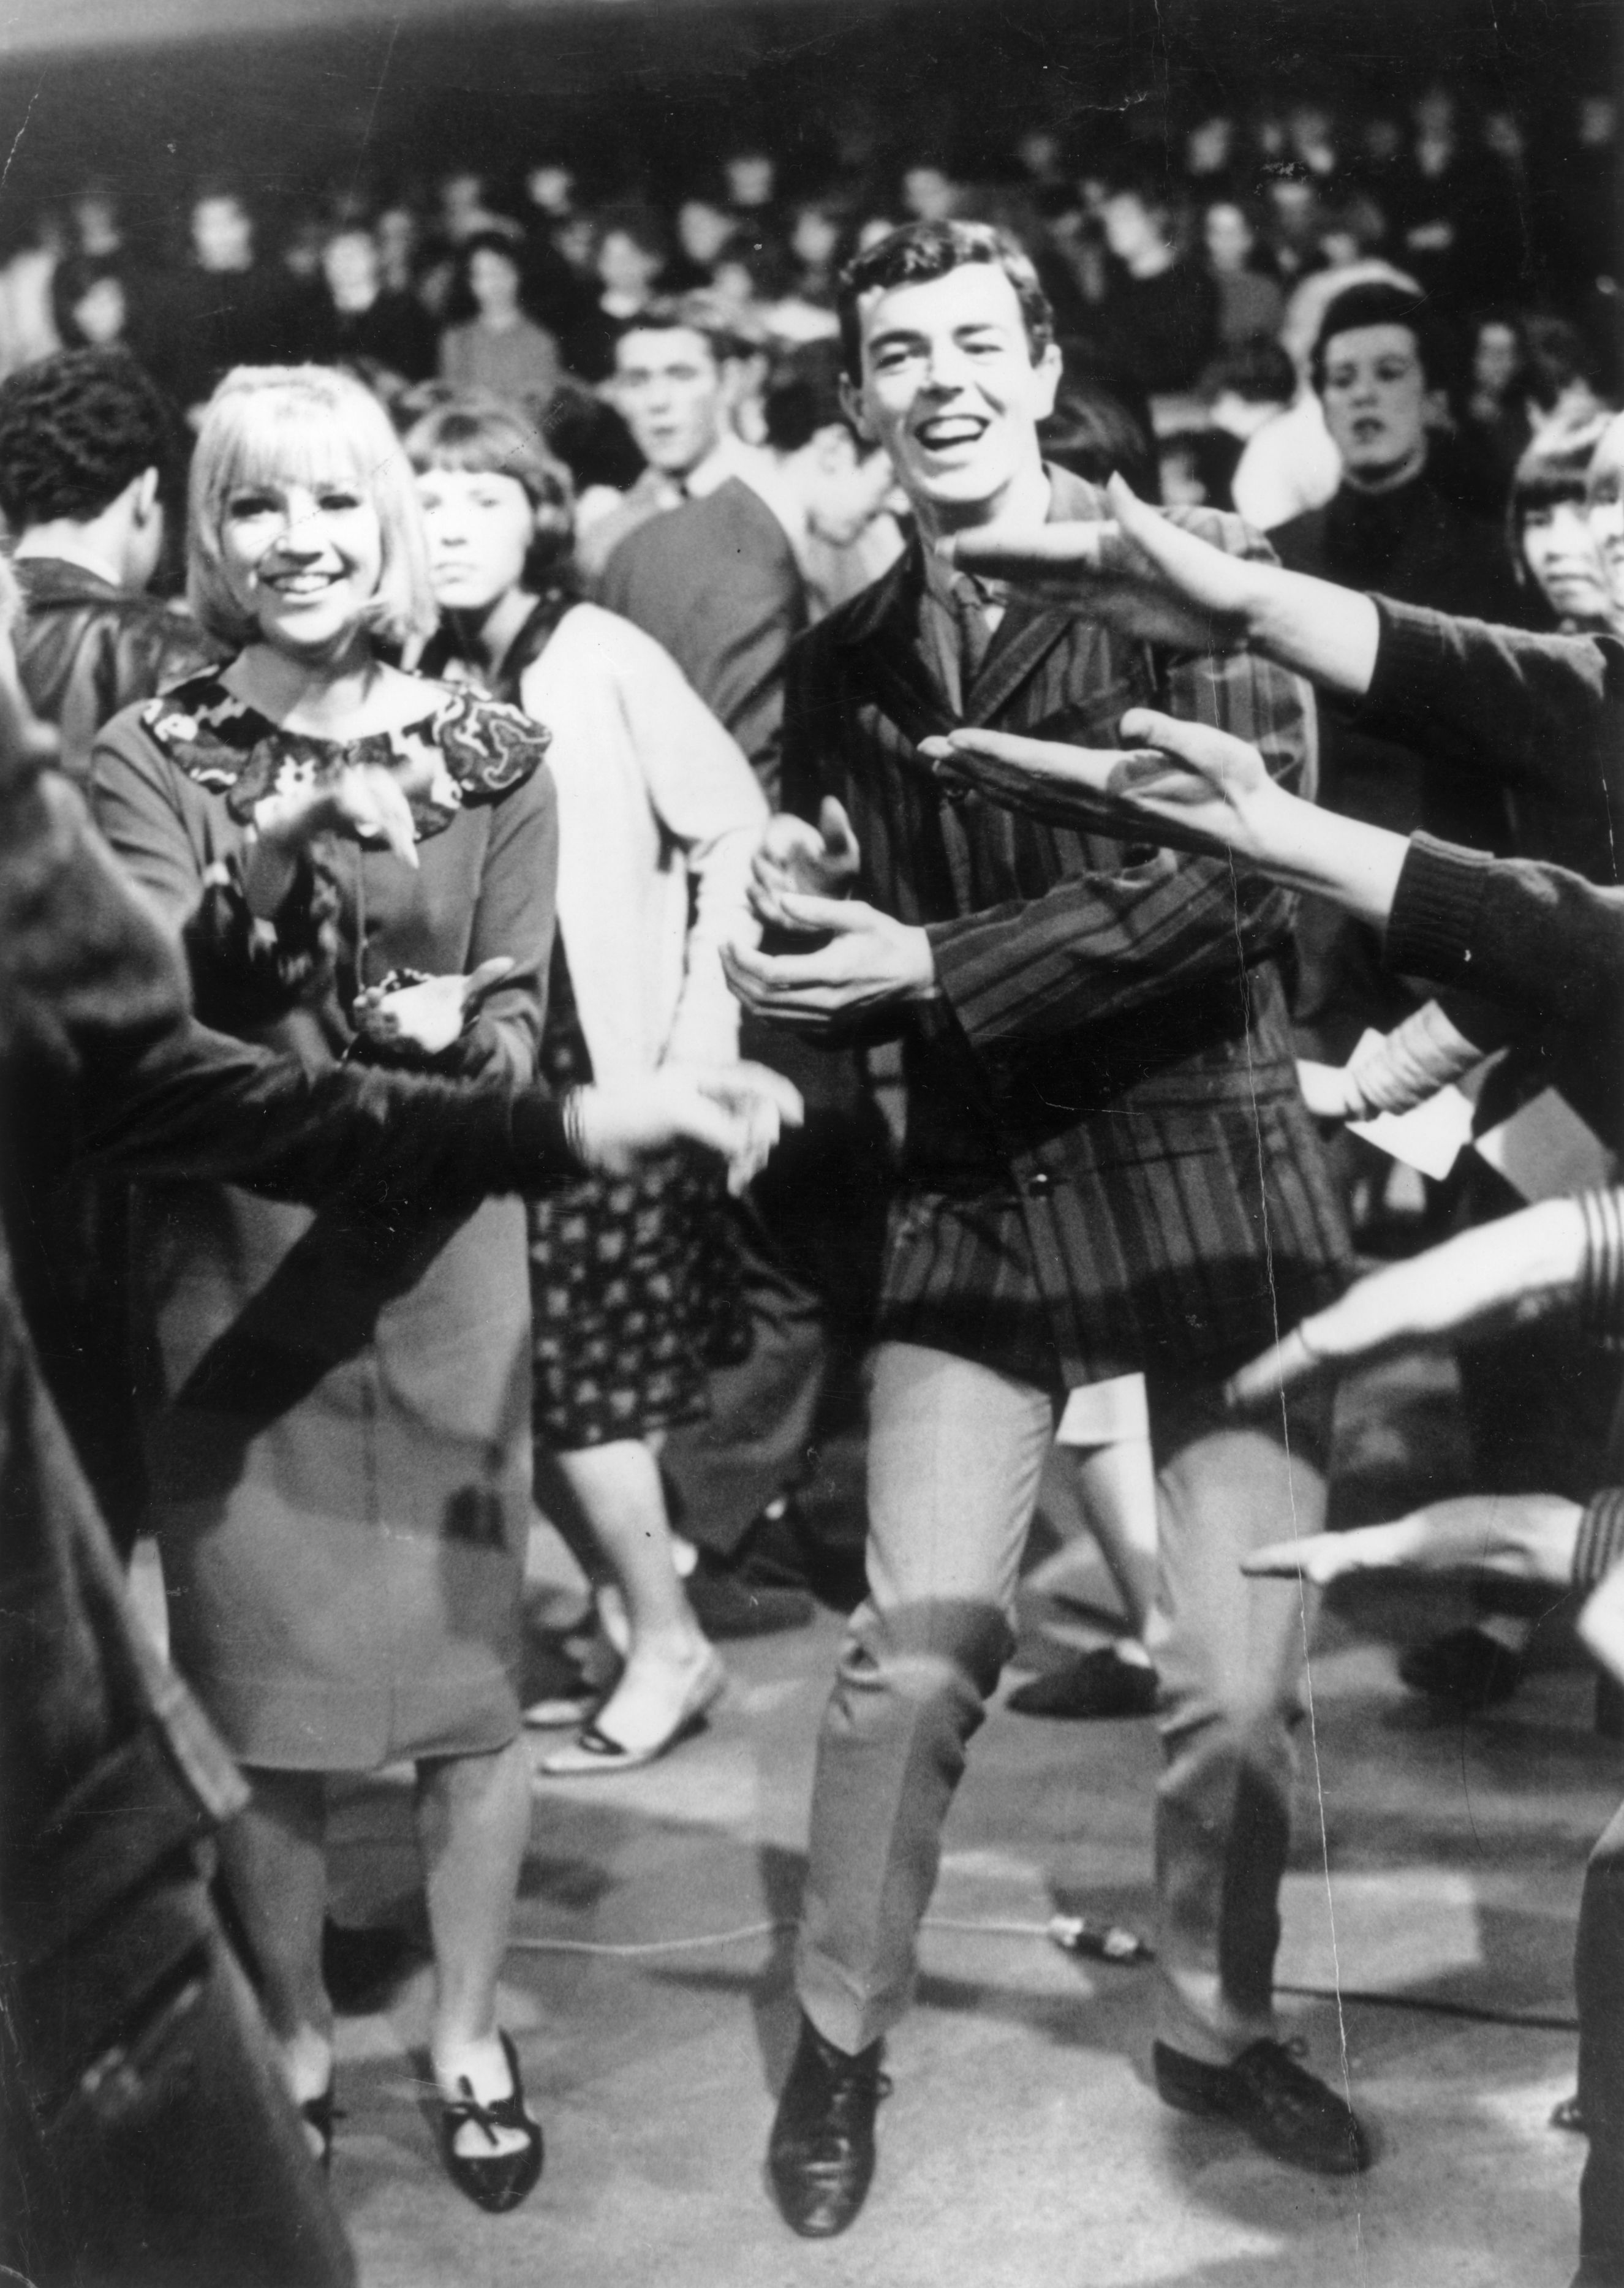 Resident dancers Patrick Kerr and his wife, Theresa Confrey, dancing during a recording of the British pop music TV programme 'Ready Steady Go!', London, February 1964. (Photo by Keystone Features/Getty Images)